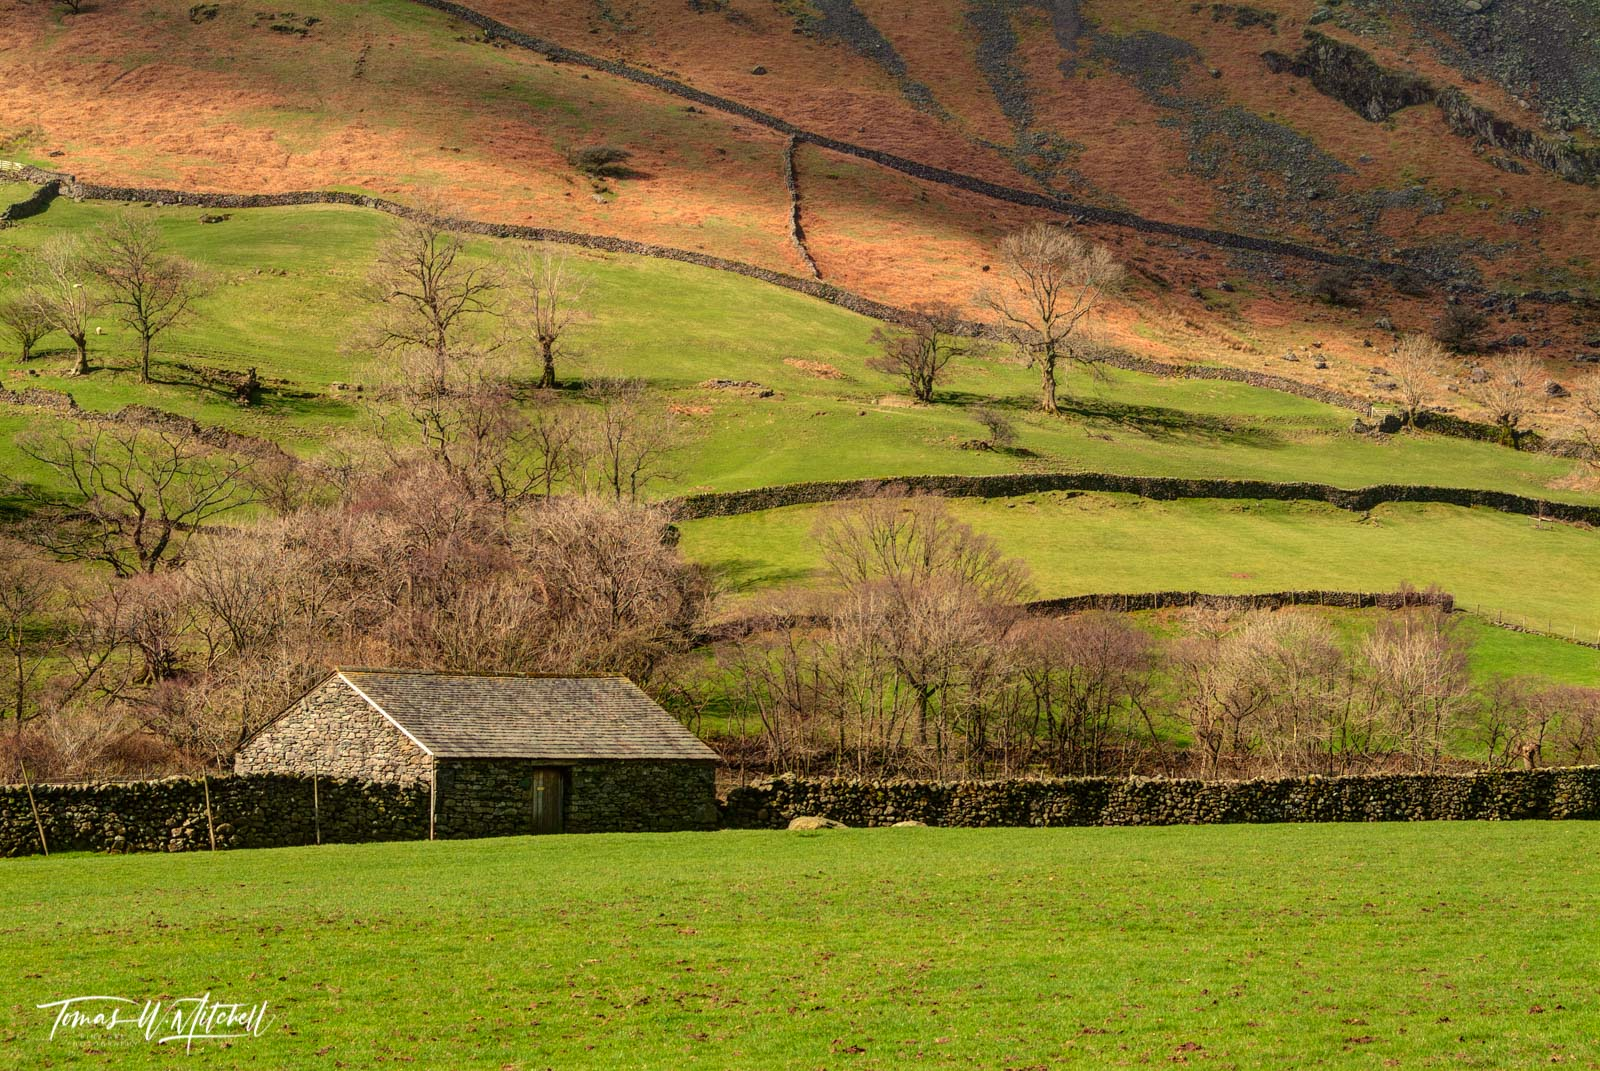 limited edition, museum grade, fine art, prints, wordsworth, grasmere, lake district, england, village, forest side hotel, lake, photograph, light, green, fields, grass, stone, rock, barn, walls, photo